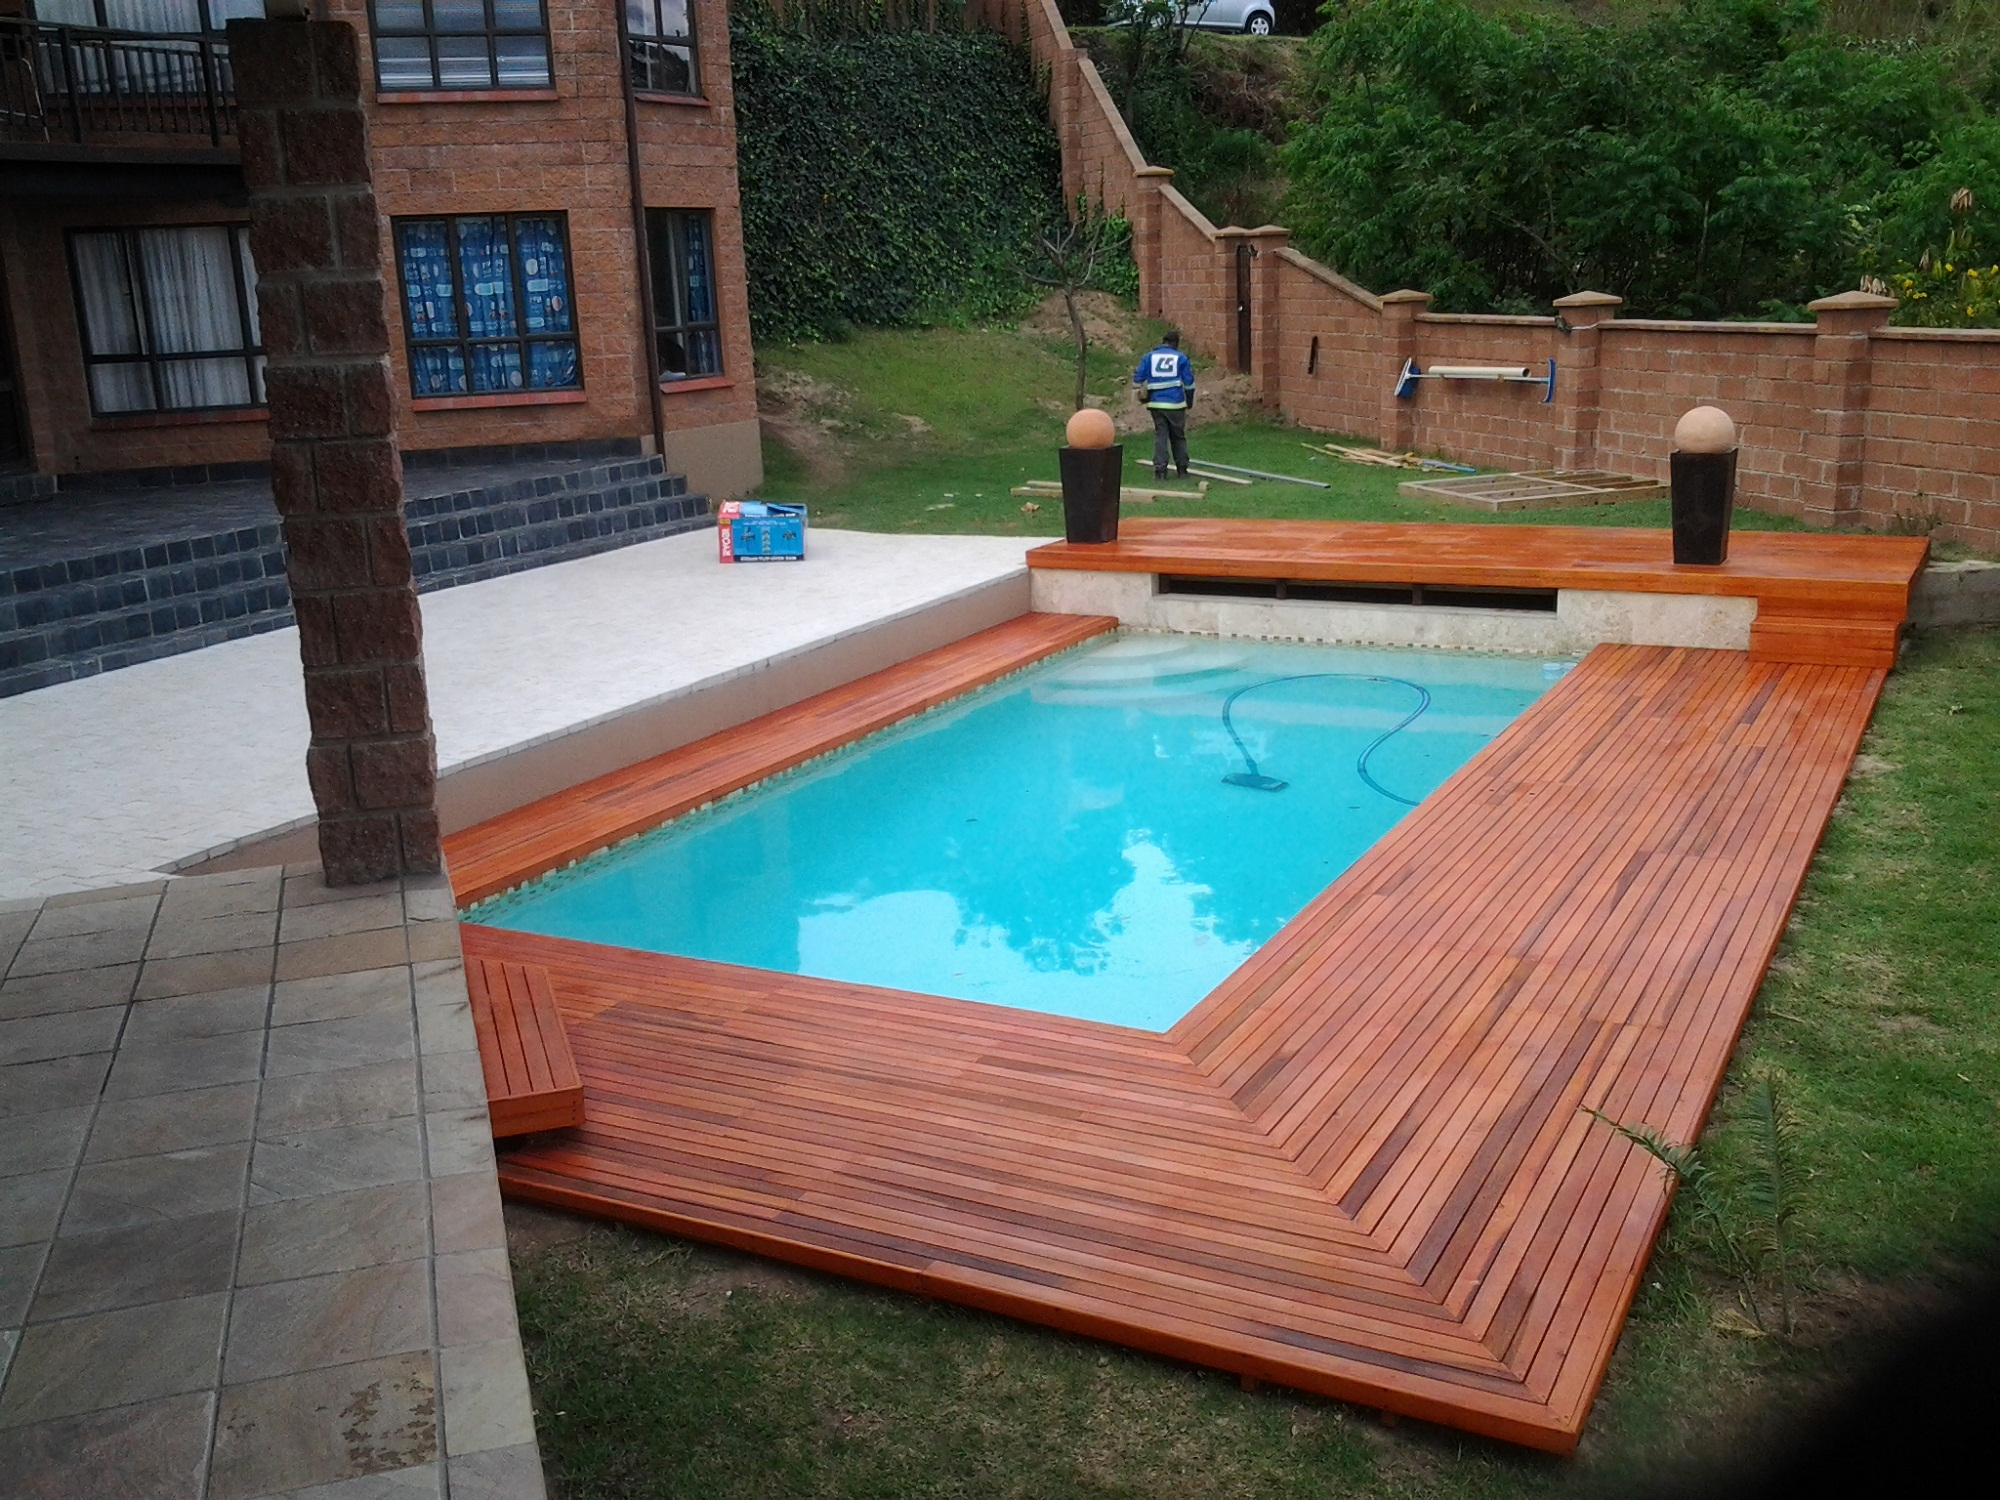 Rectangular Pool Designs tropicana 2a Rectangular Pool With Wooden Deck